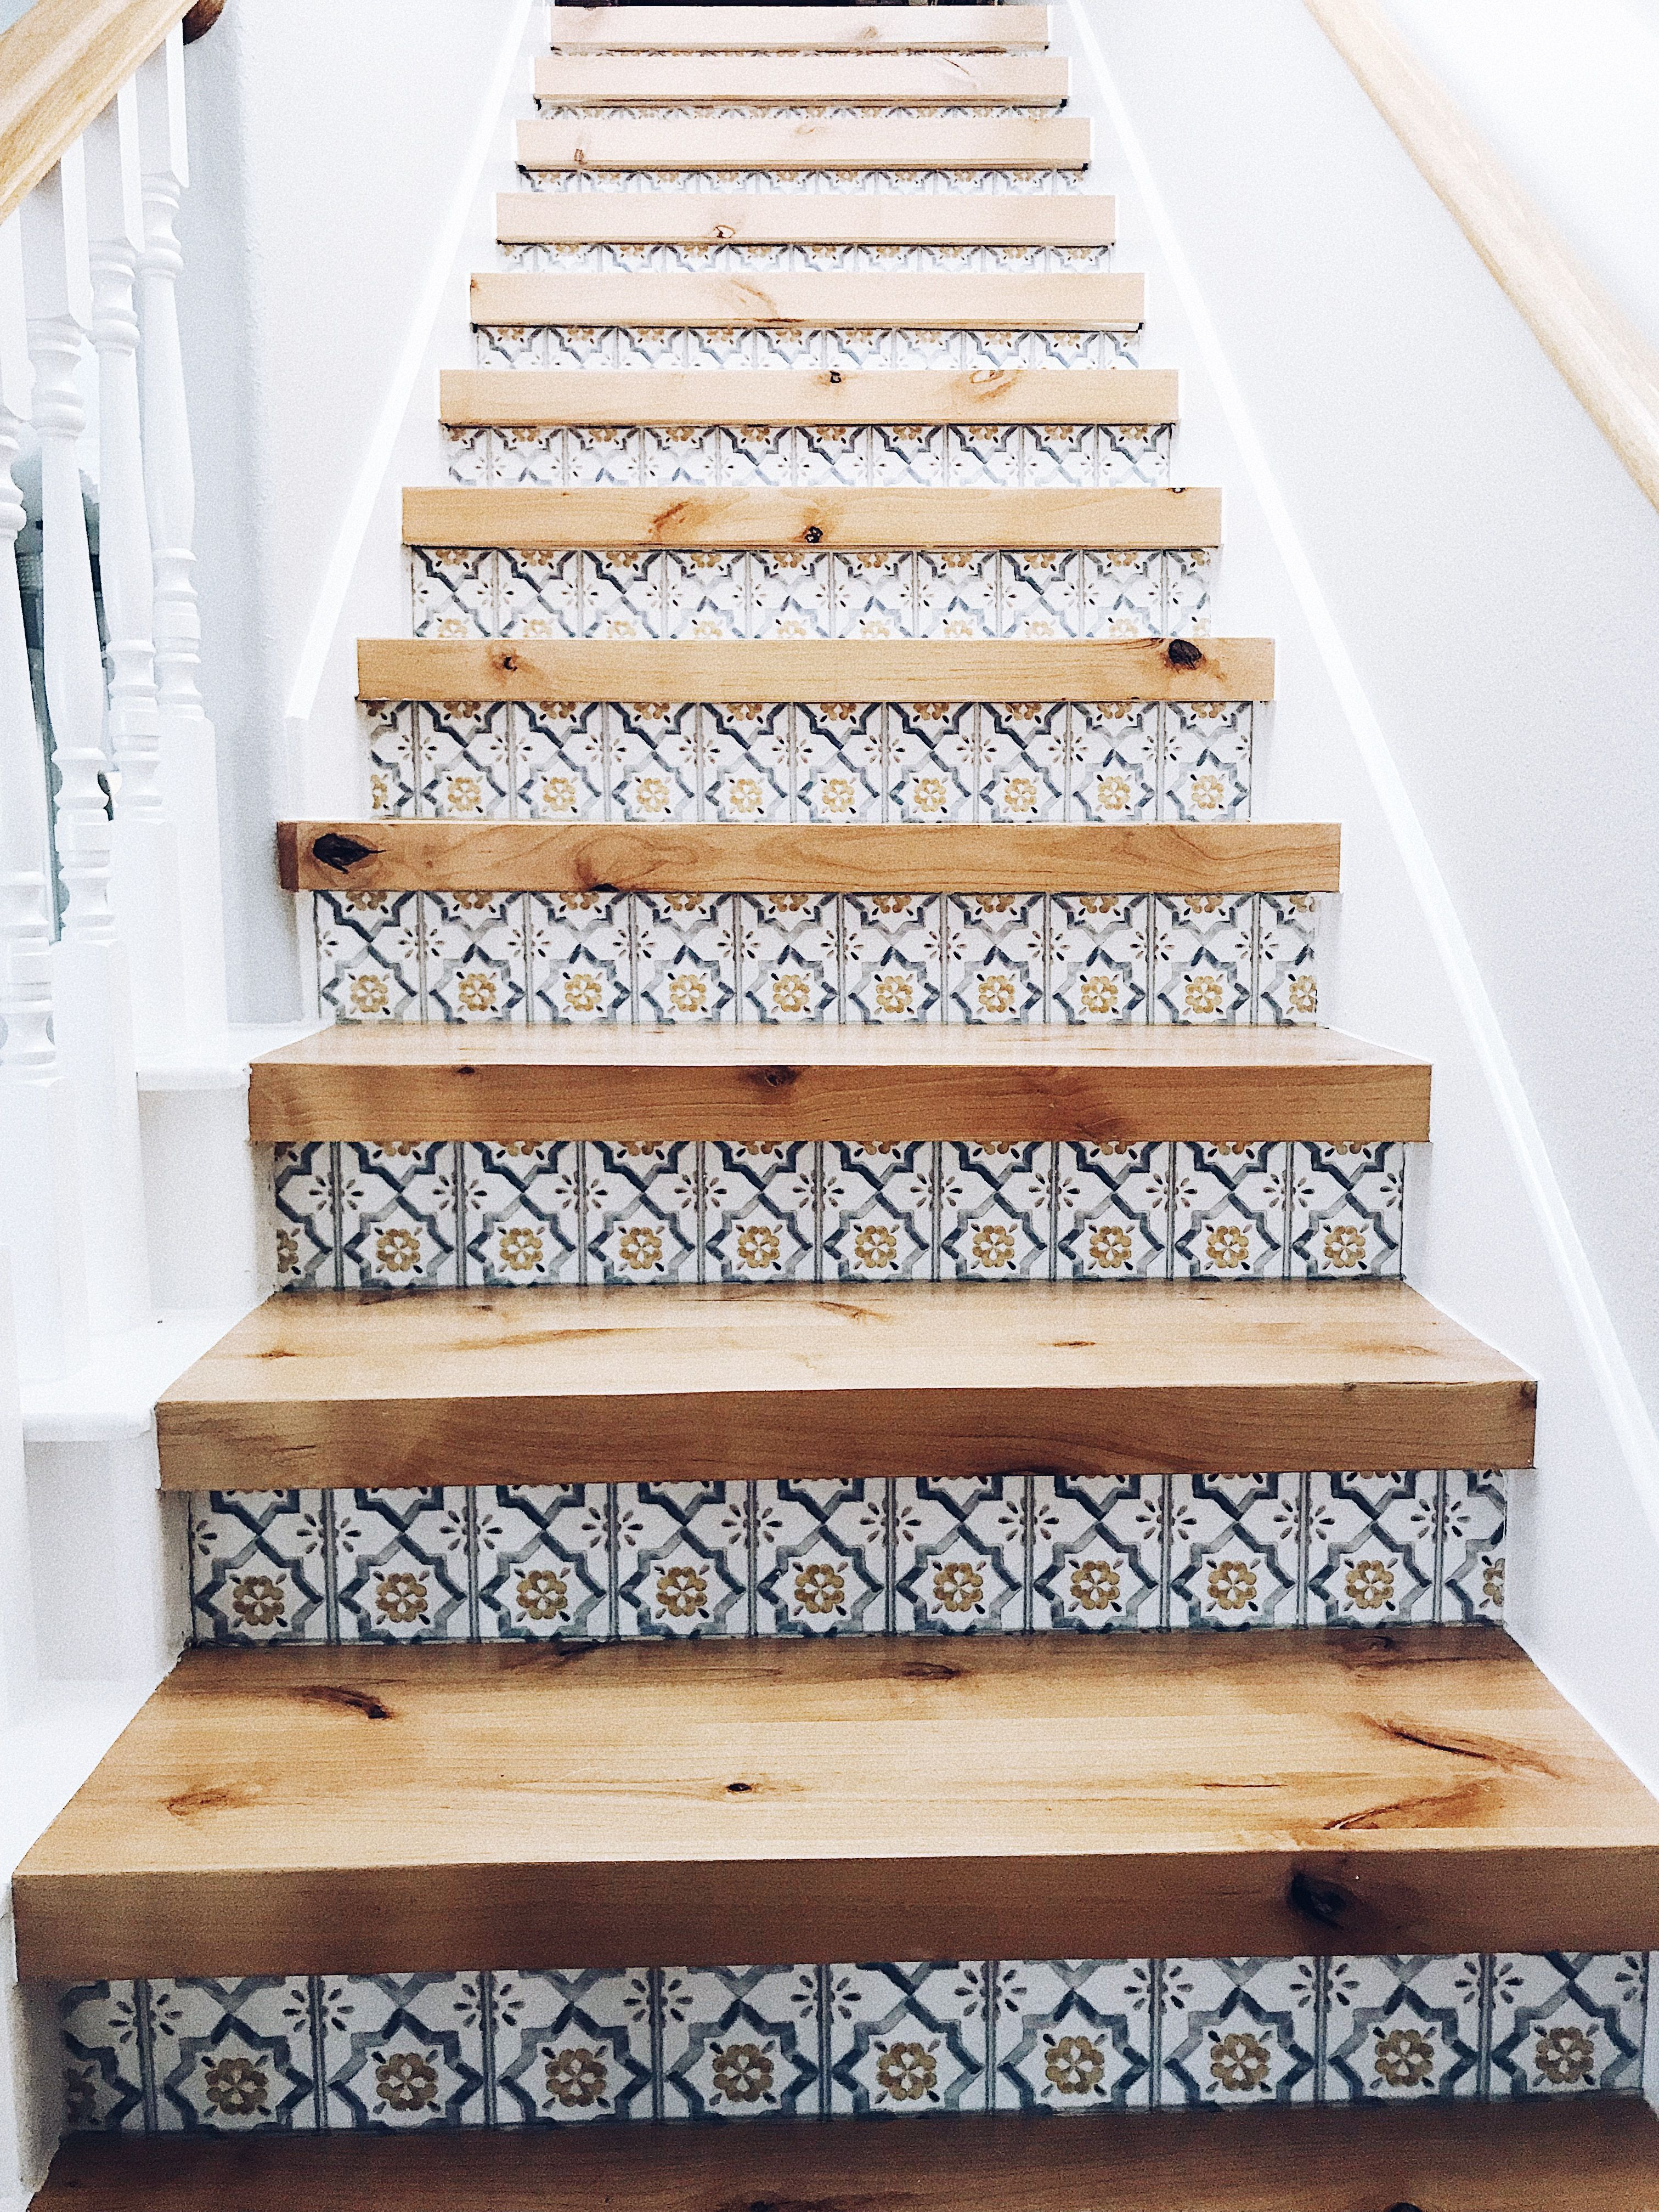 Wood And Tiled Risers Stairs Stairs Woodstairs Woodenstairs | Wood Stairs With Tile Risers | Grey | Diy | Design | Mosaic | Stone